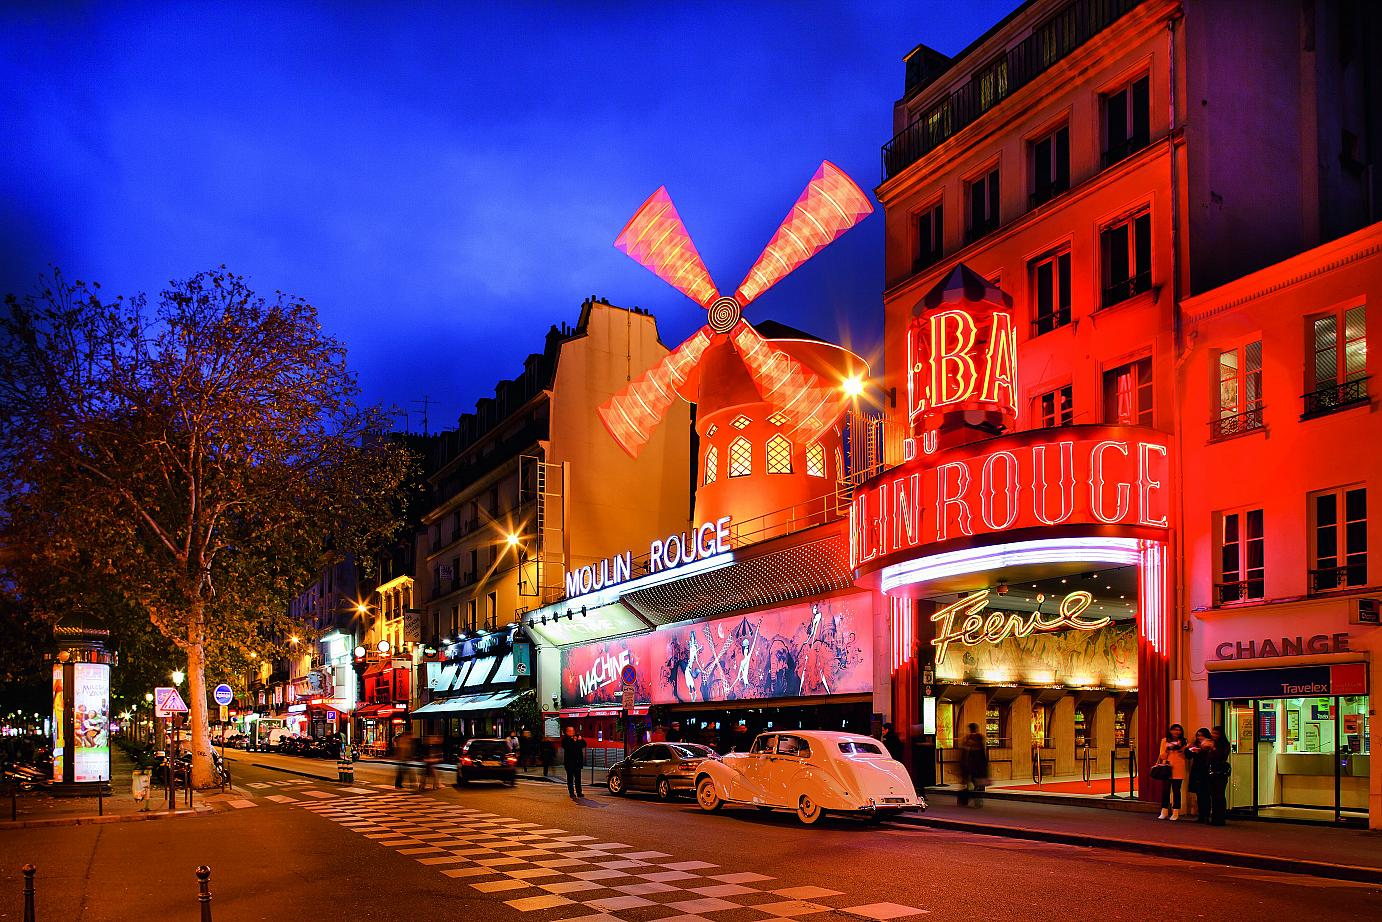 Moulin Rouge - an establishment famous the world over.